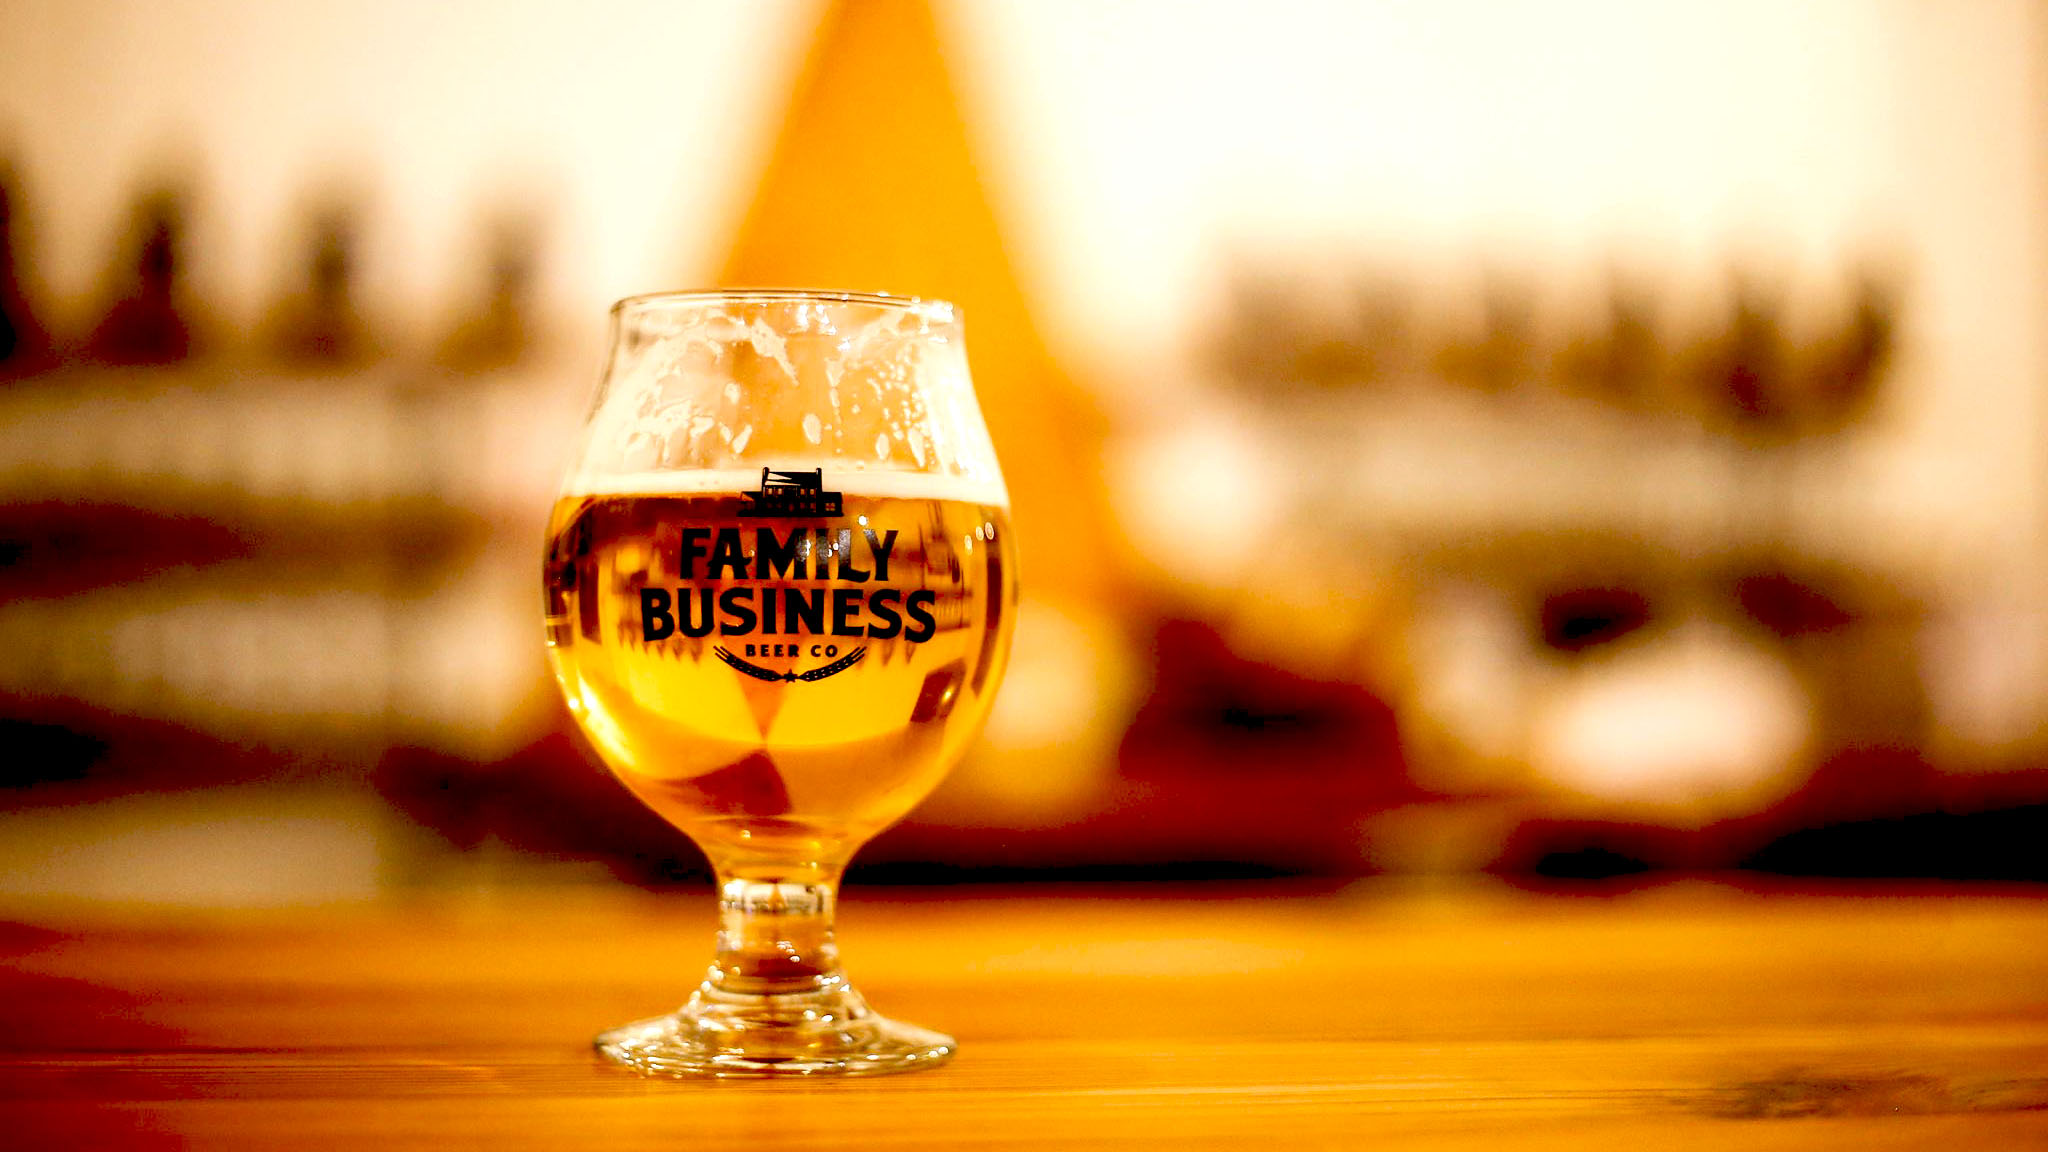 Image of Family Business Beer Company